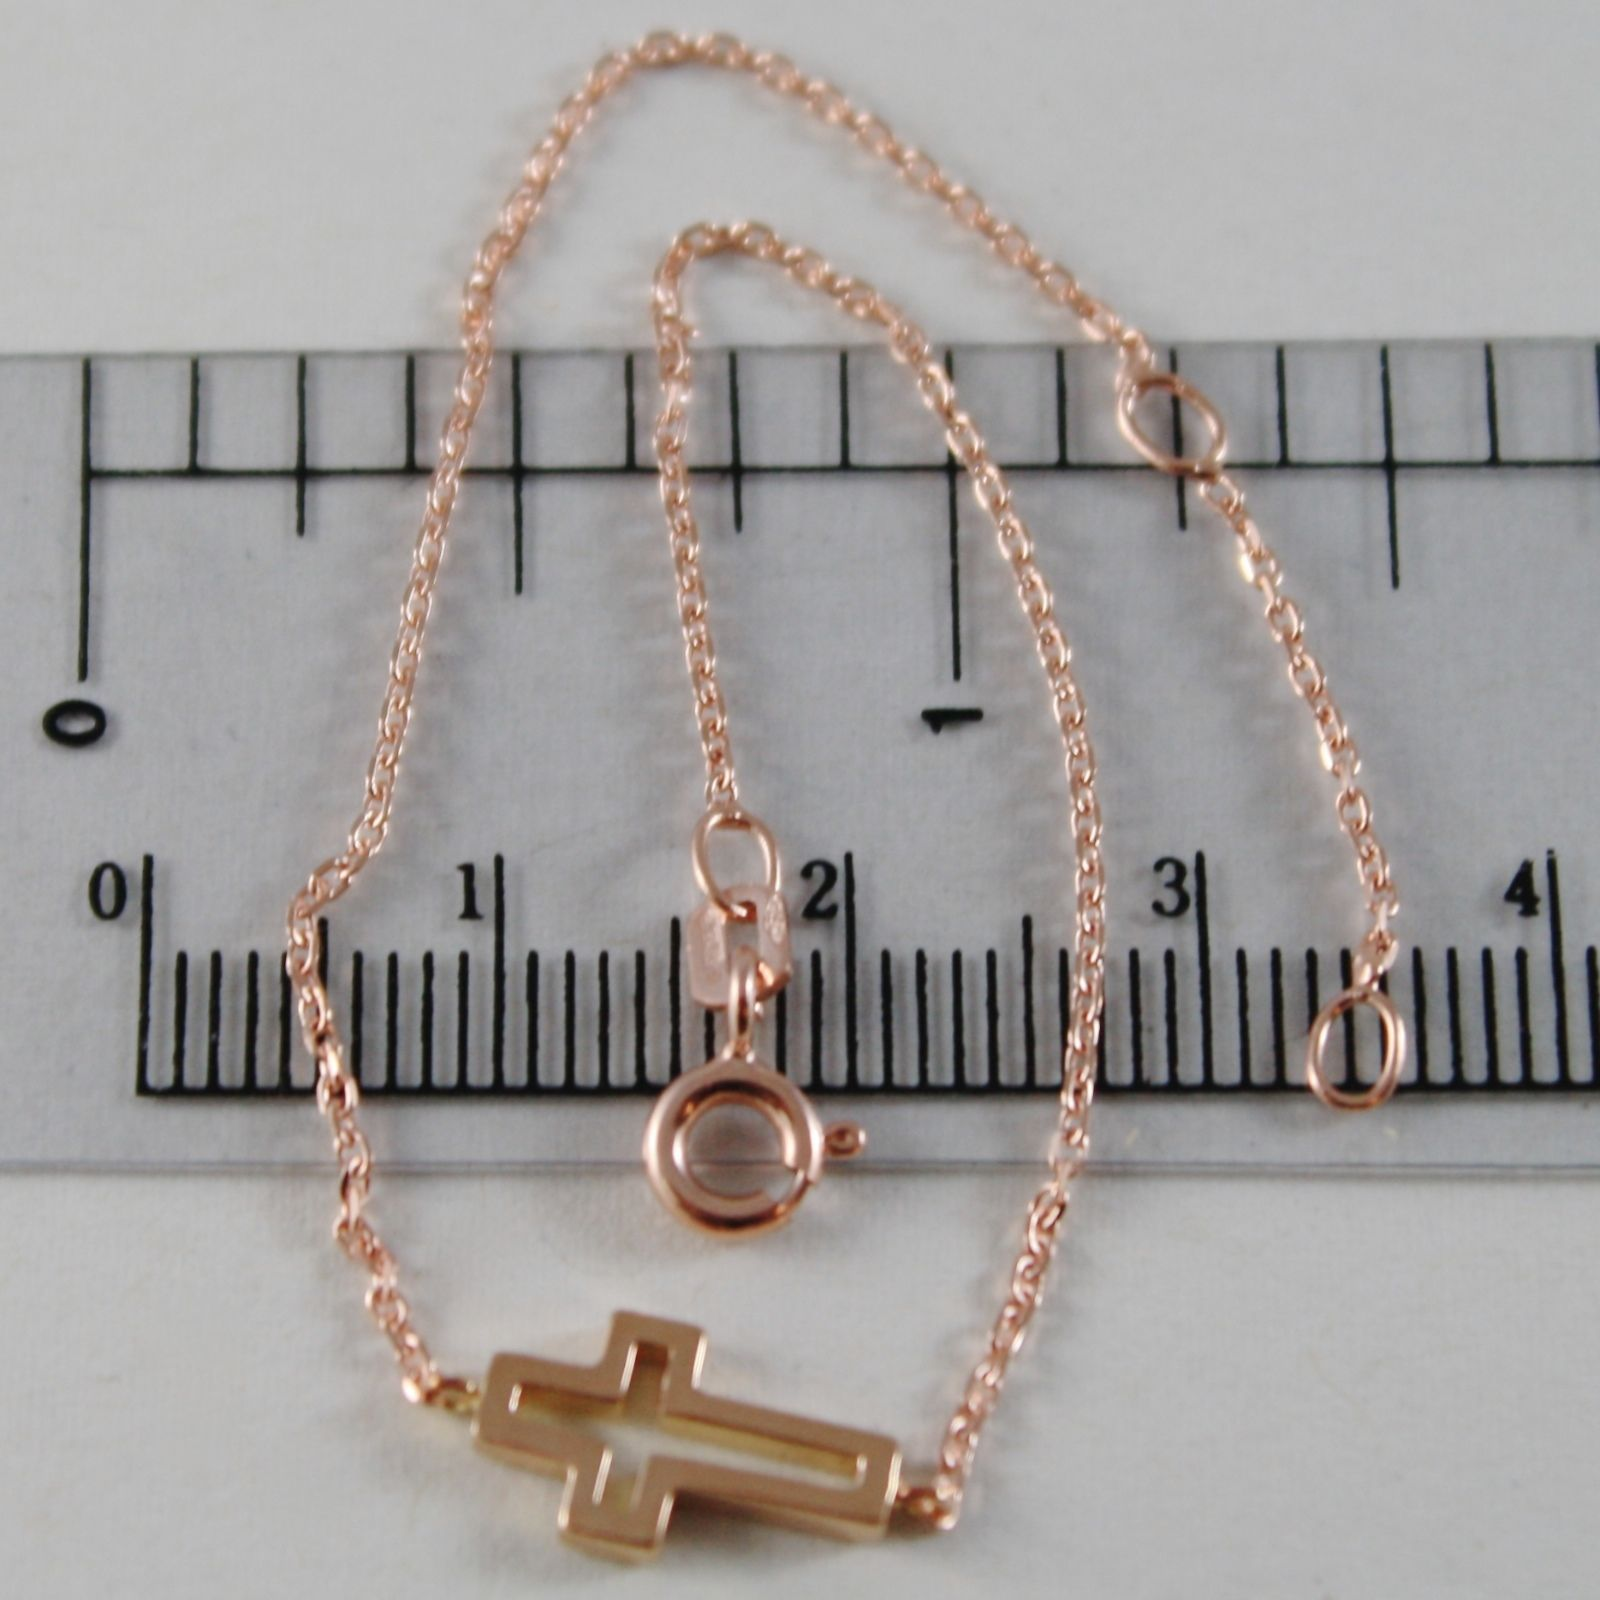 18K ROSE GOLD THIN 1 MM BRACELET 7.10 INCHES, WITH MINI CROSS, MADE IN ITALY